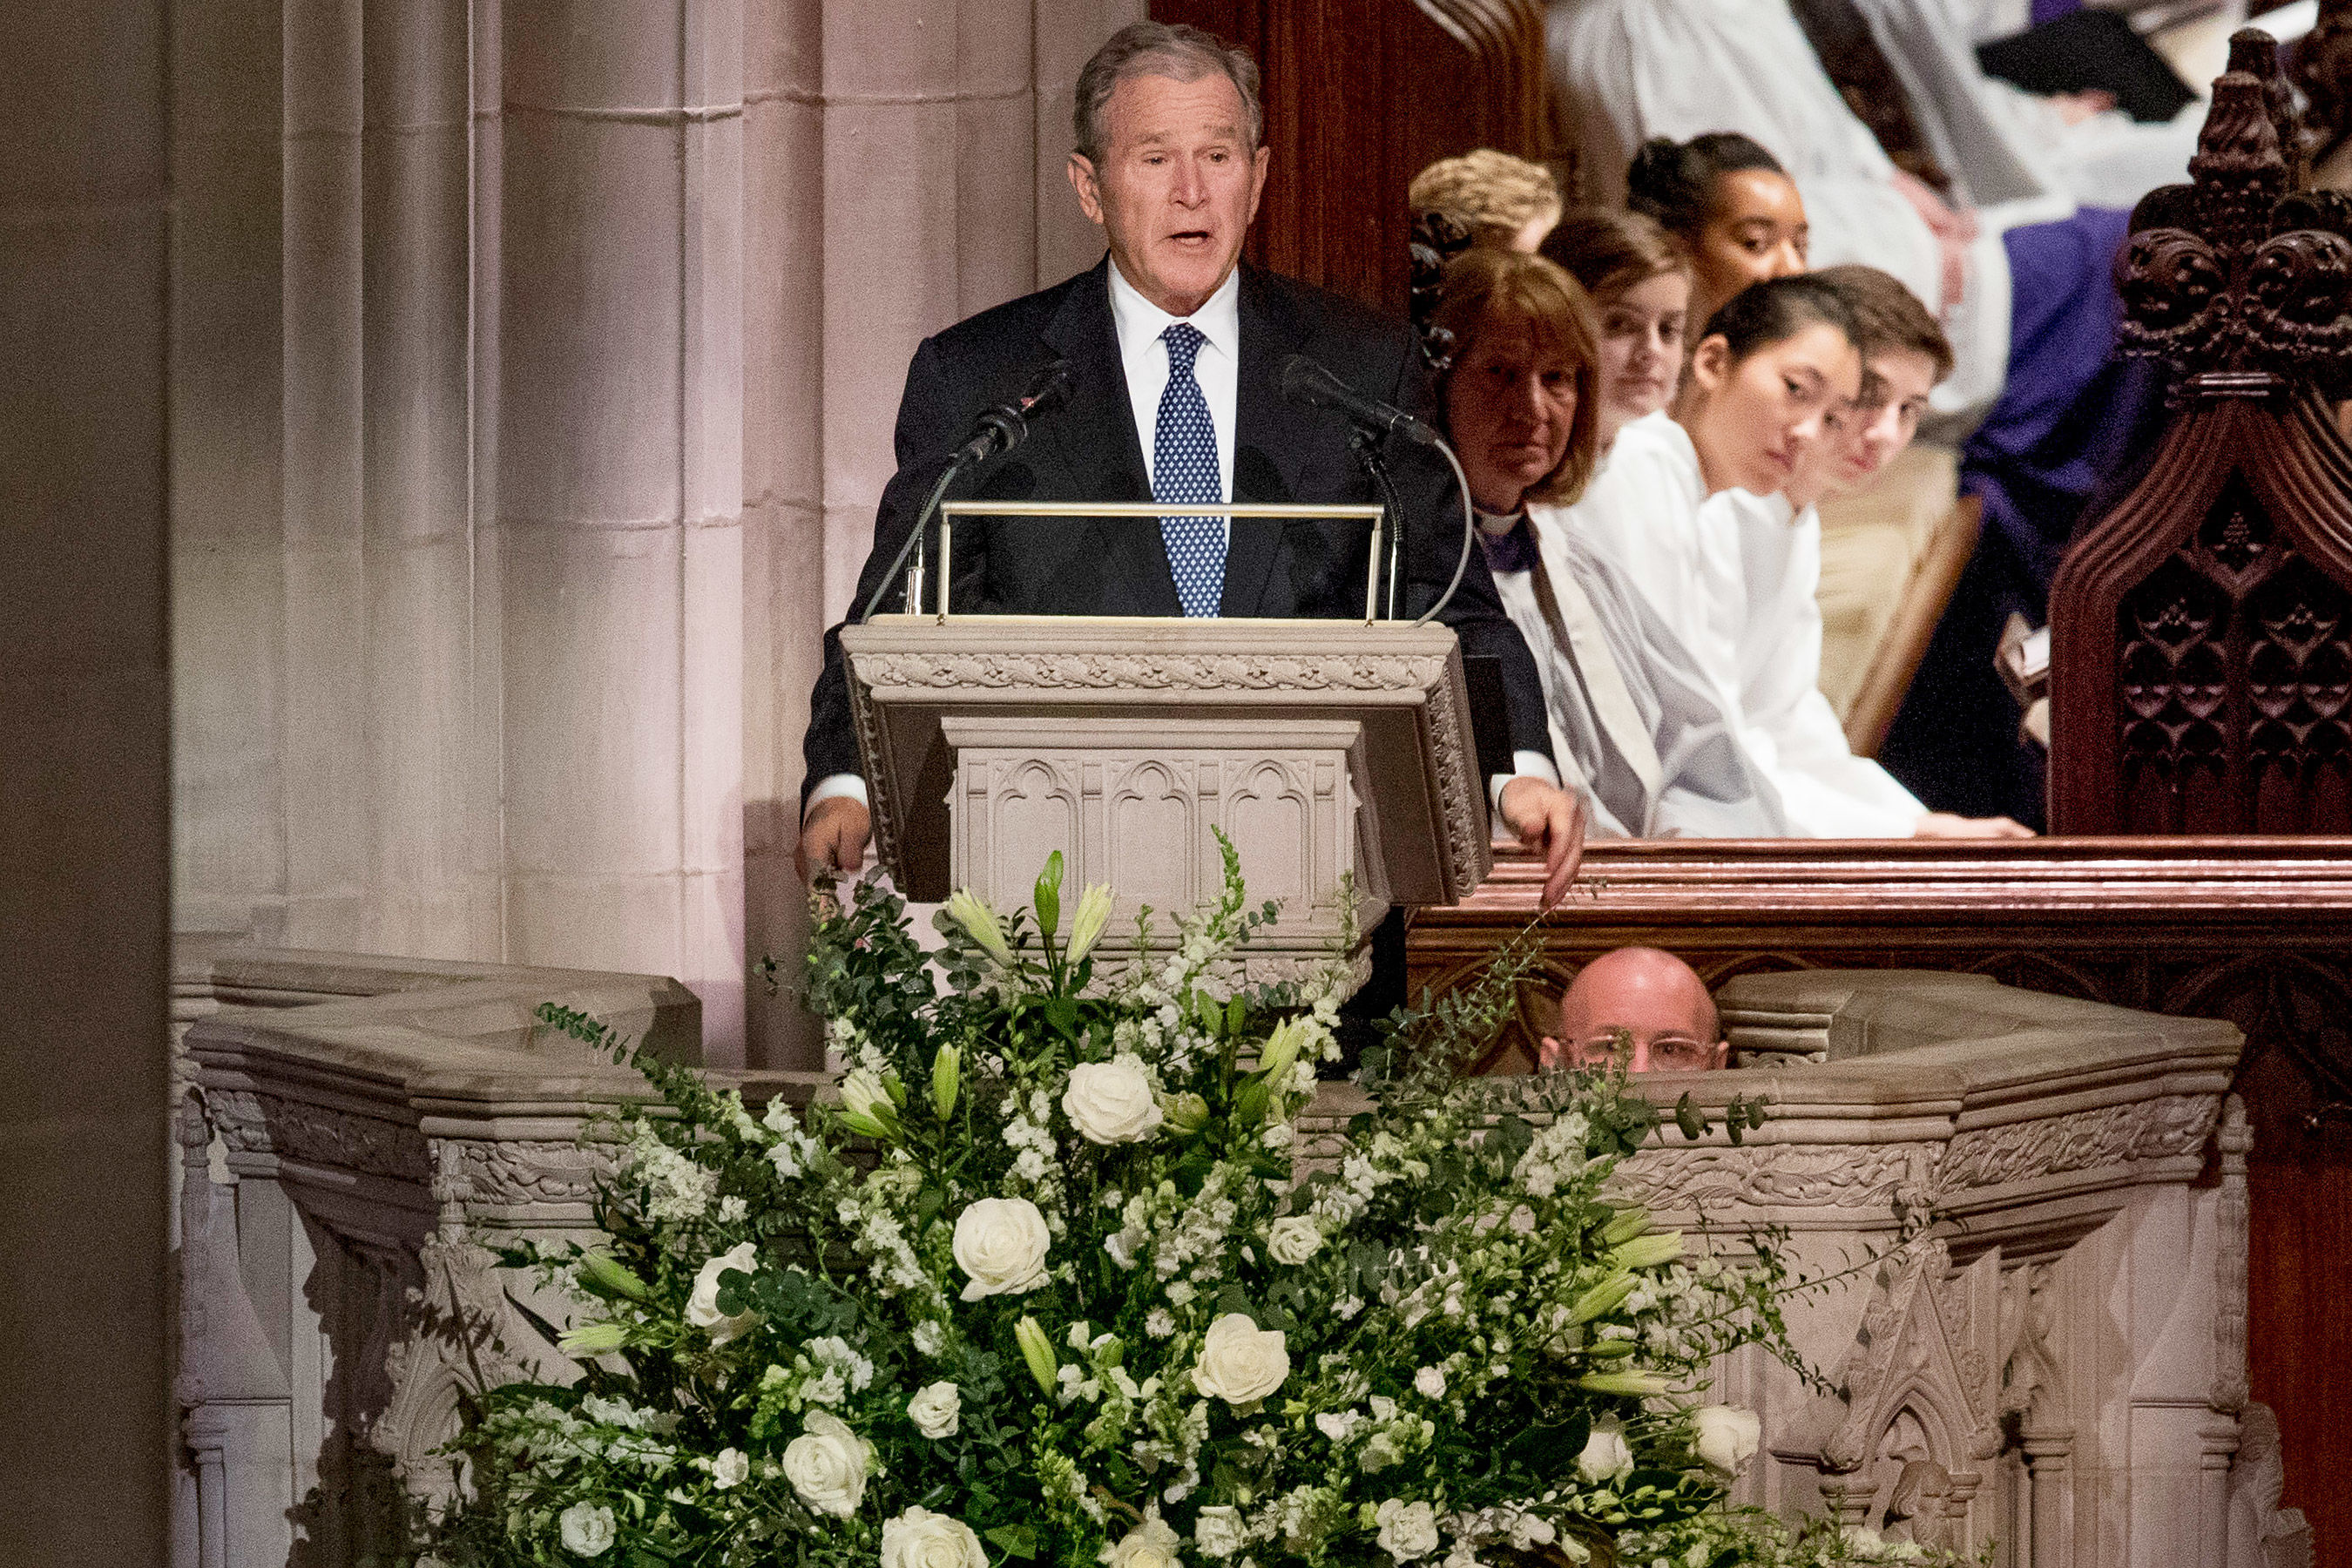 George W. Bush Cries During Emotional Eulogy of Father George H.W.: 'He Was Close to Perfect'